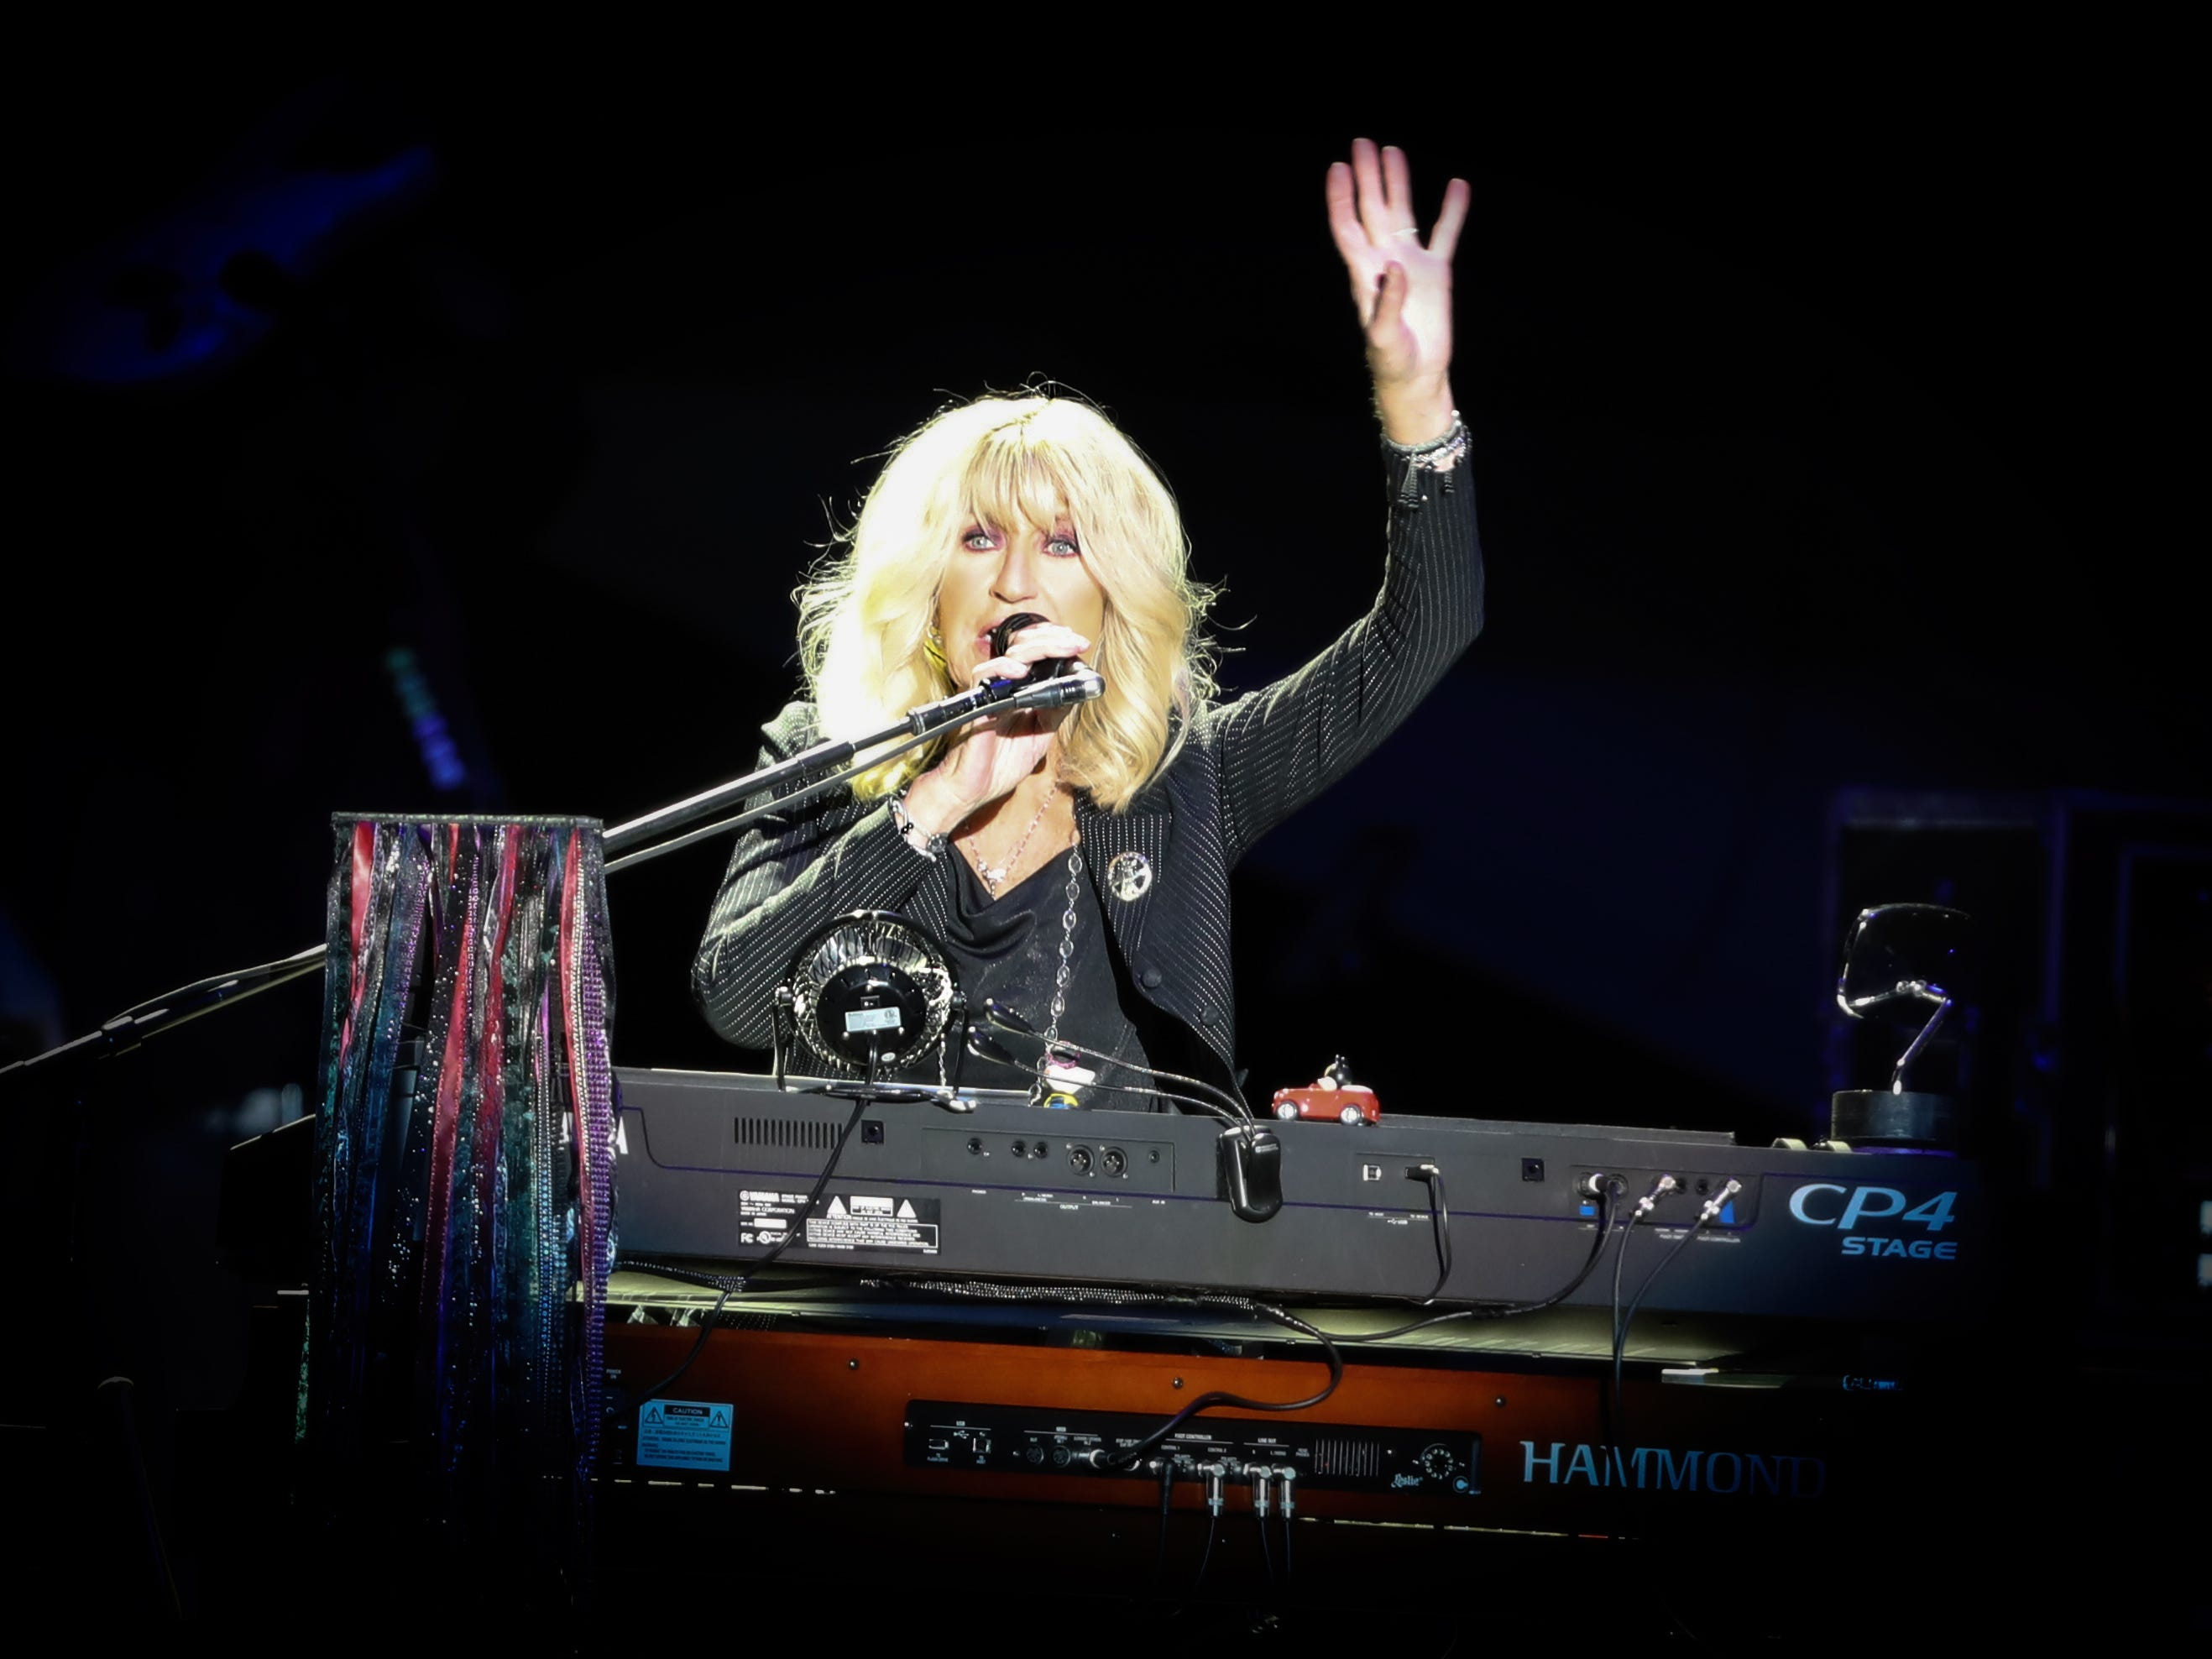 Christine McVie of Fleetwood Mac performs at Wells Fargo Arena in Des Moines, Iowa on Oct. 14, 2018.